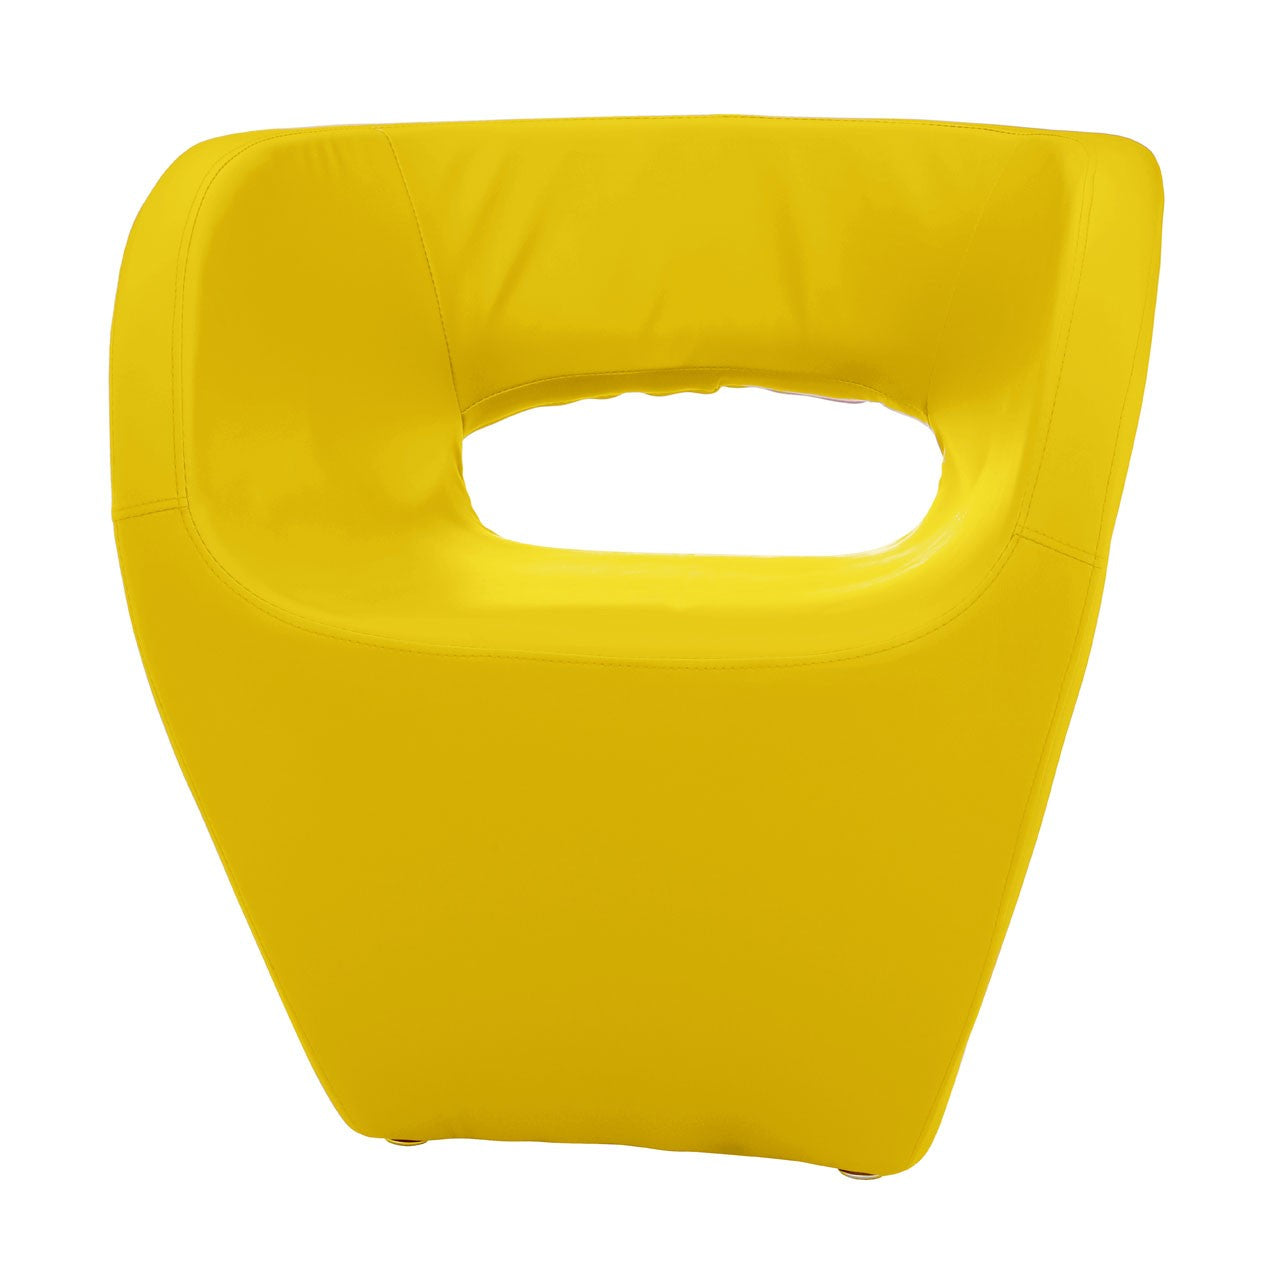 Aldo Chair Yellow - Ezzo